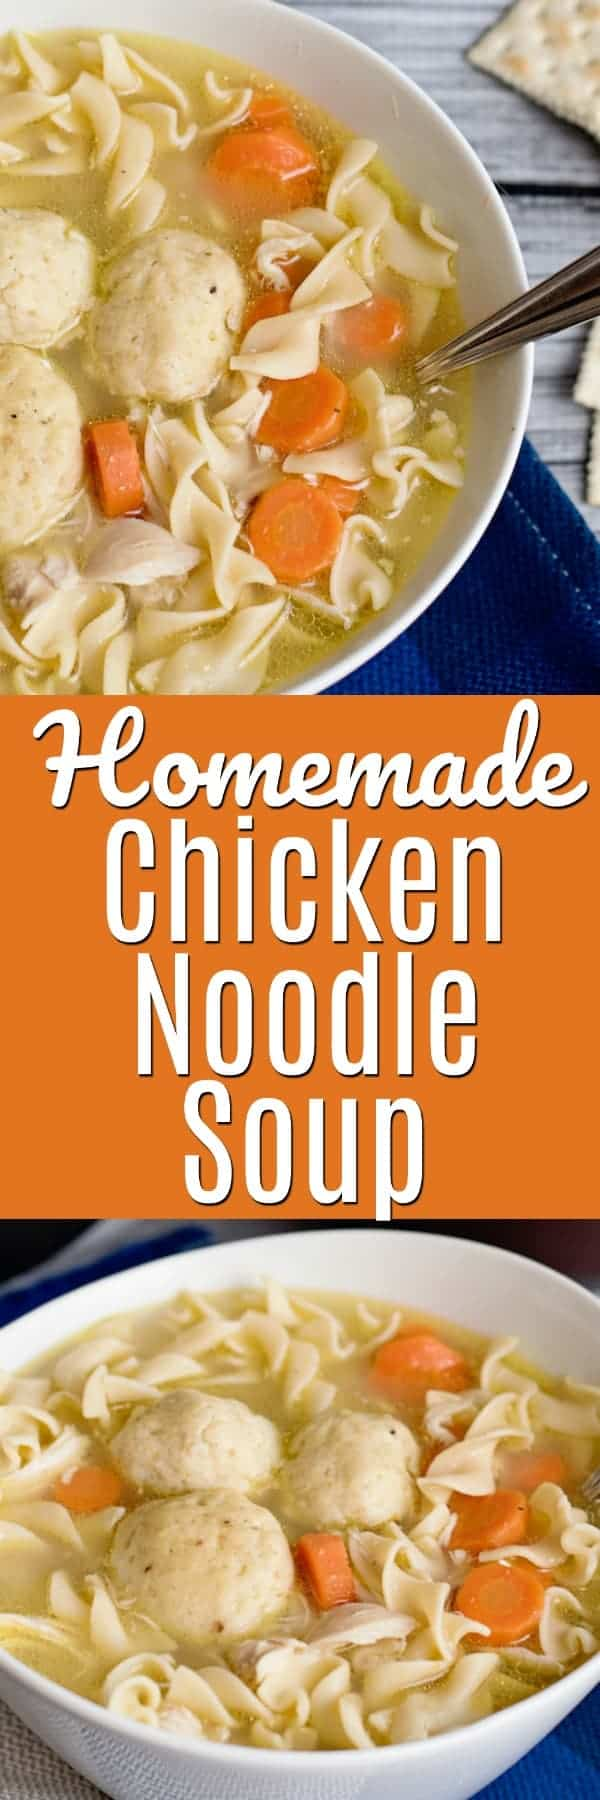 Jewish holiday, Friday night dinner, feeling under the weather or just because - Chicken Soup is always our family favorite! Just like my grandma used to make, this homemade chicken noodle soup, with Matzo Balls and Egg Noodles, is easy enough for even the most cooking challenged! #chickensoup #chickennoodle #chickennoodlesoup #matzo #matzoballsoup #matzoball #homemade #grandmasrecipe #jewish #jewishcooking #jewishrecipe #shabbat